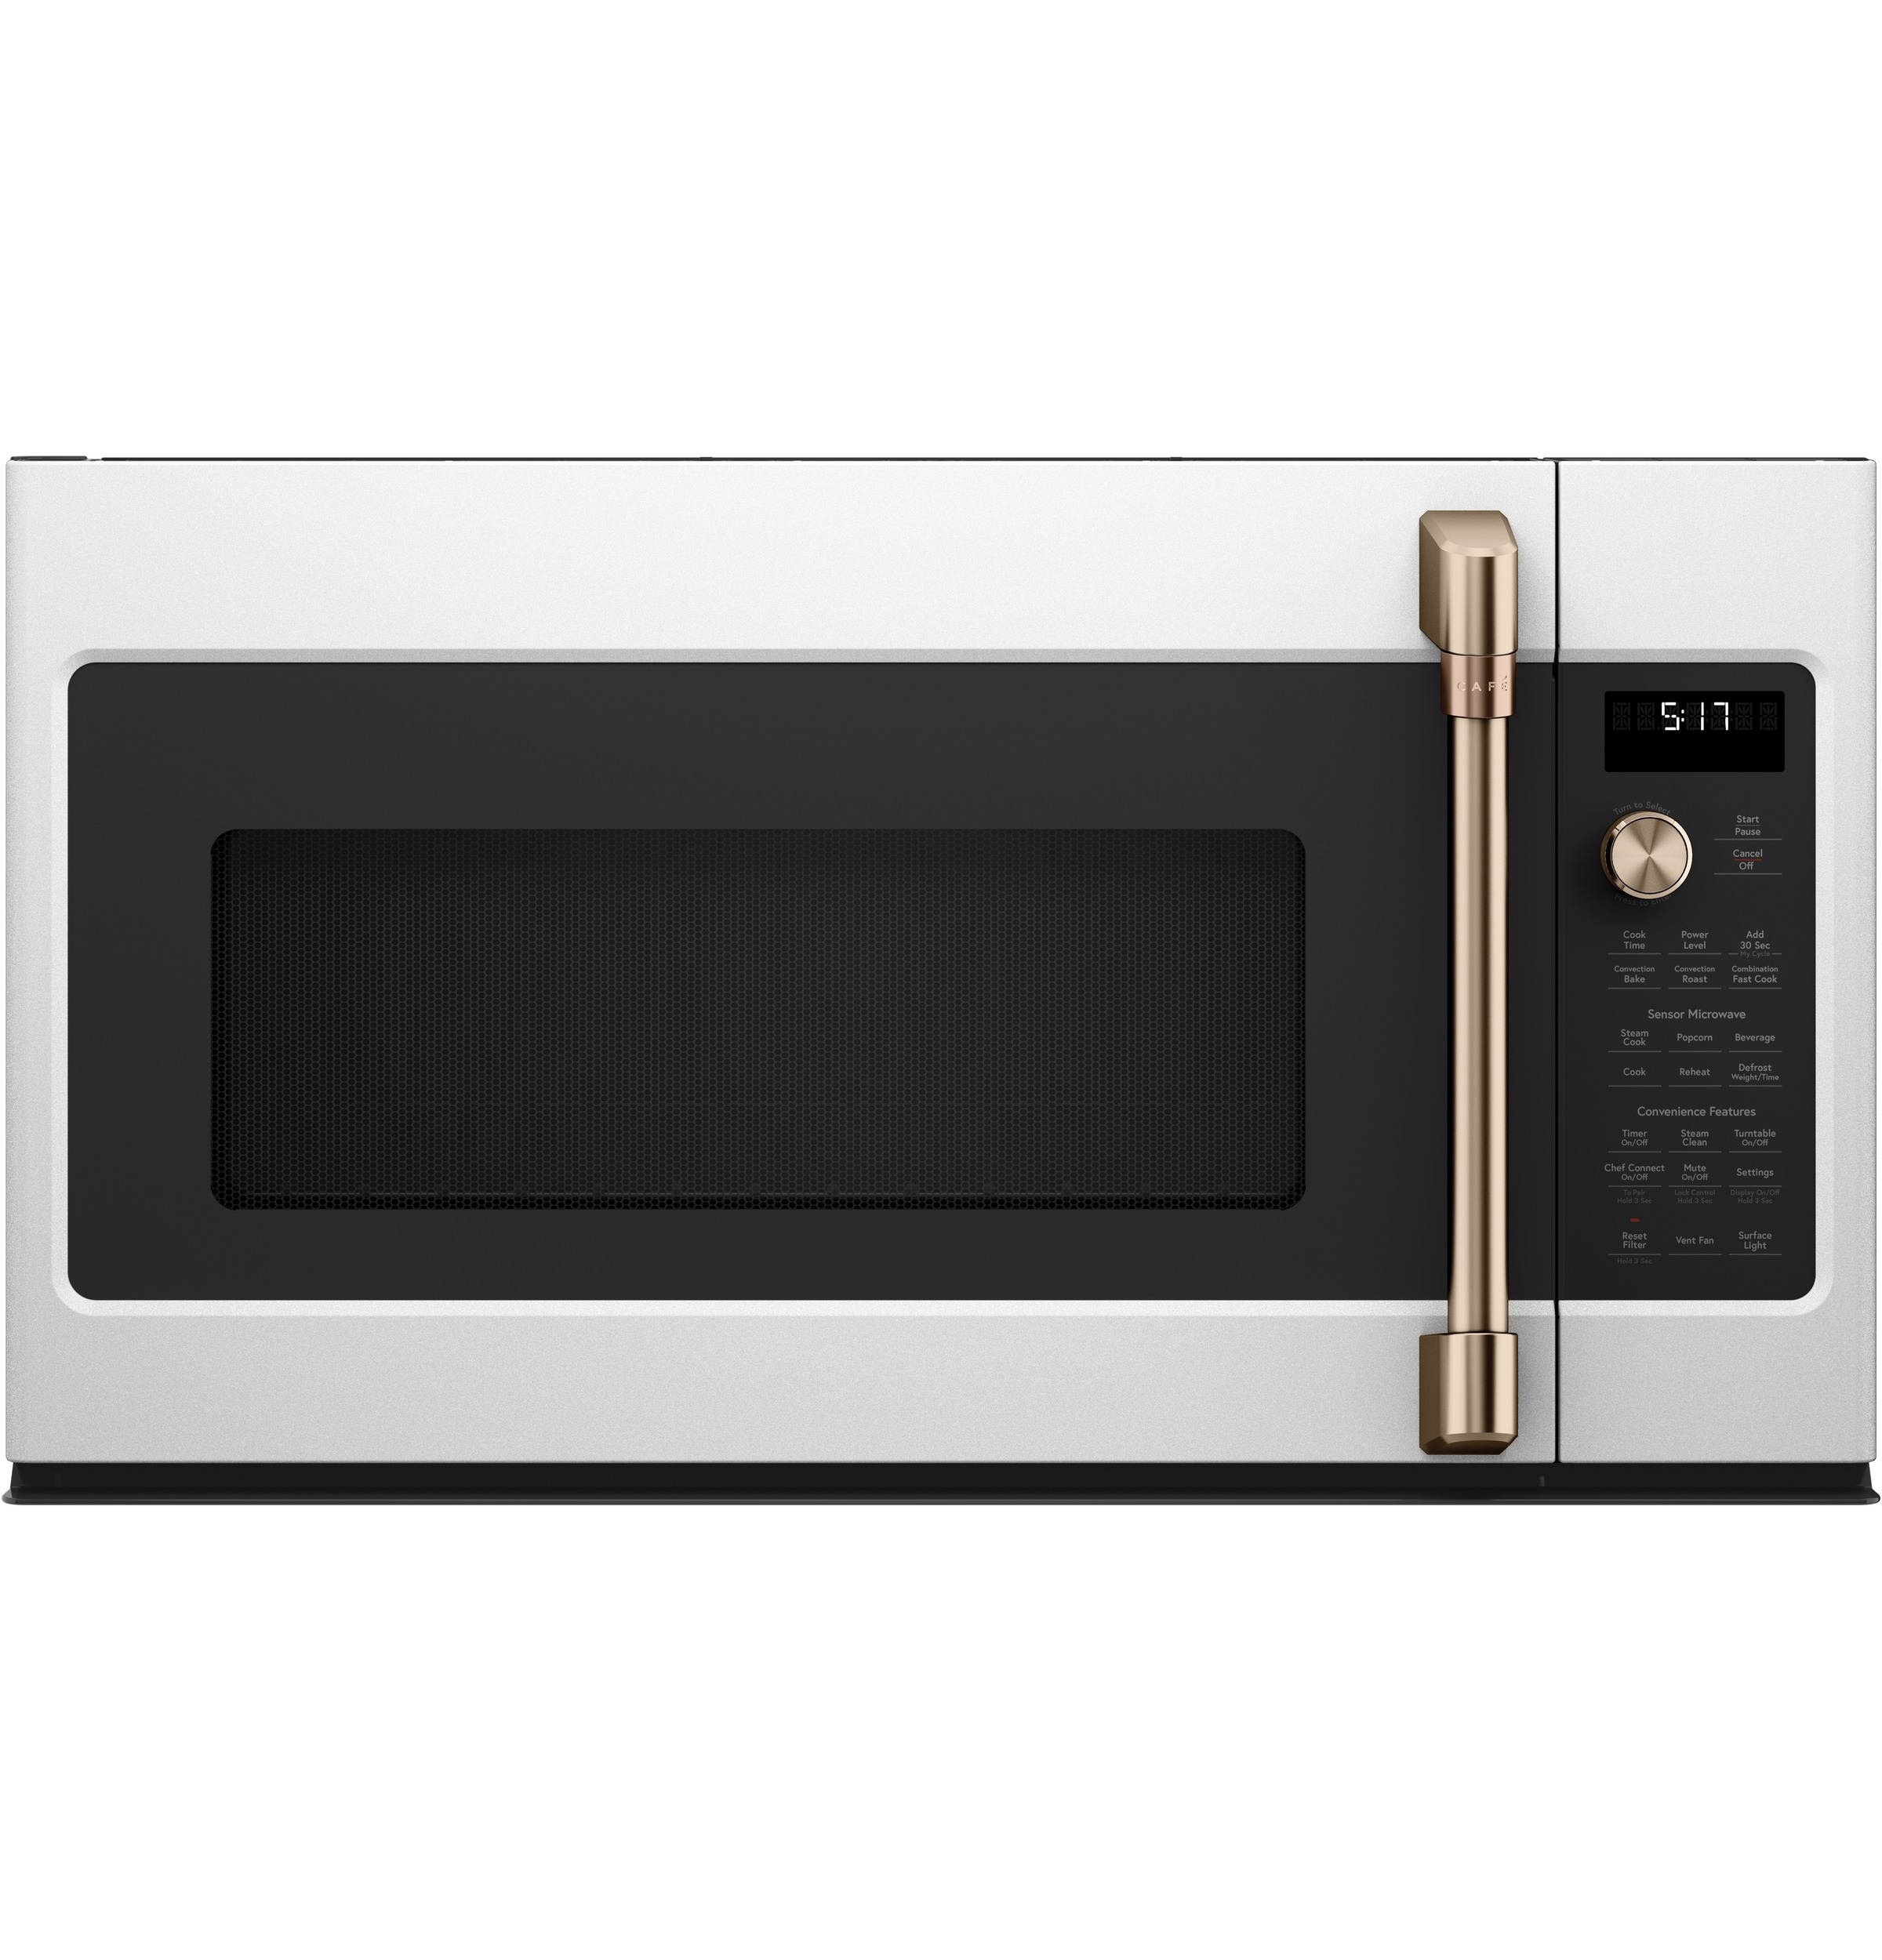 Cafe Café™ 1.7 Cu. Ft. Convection Over-the-Range Microwave Oven